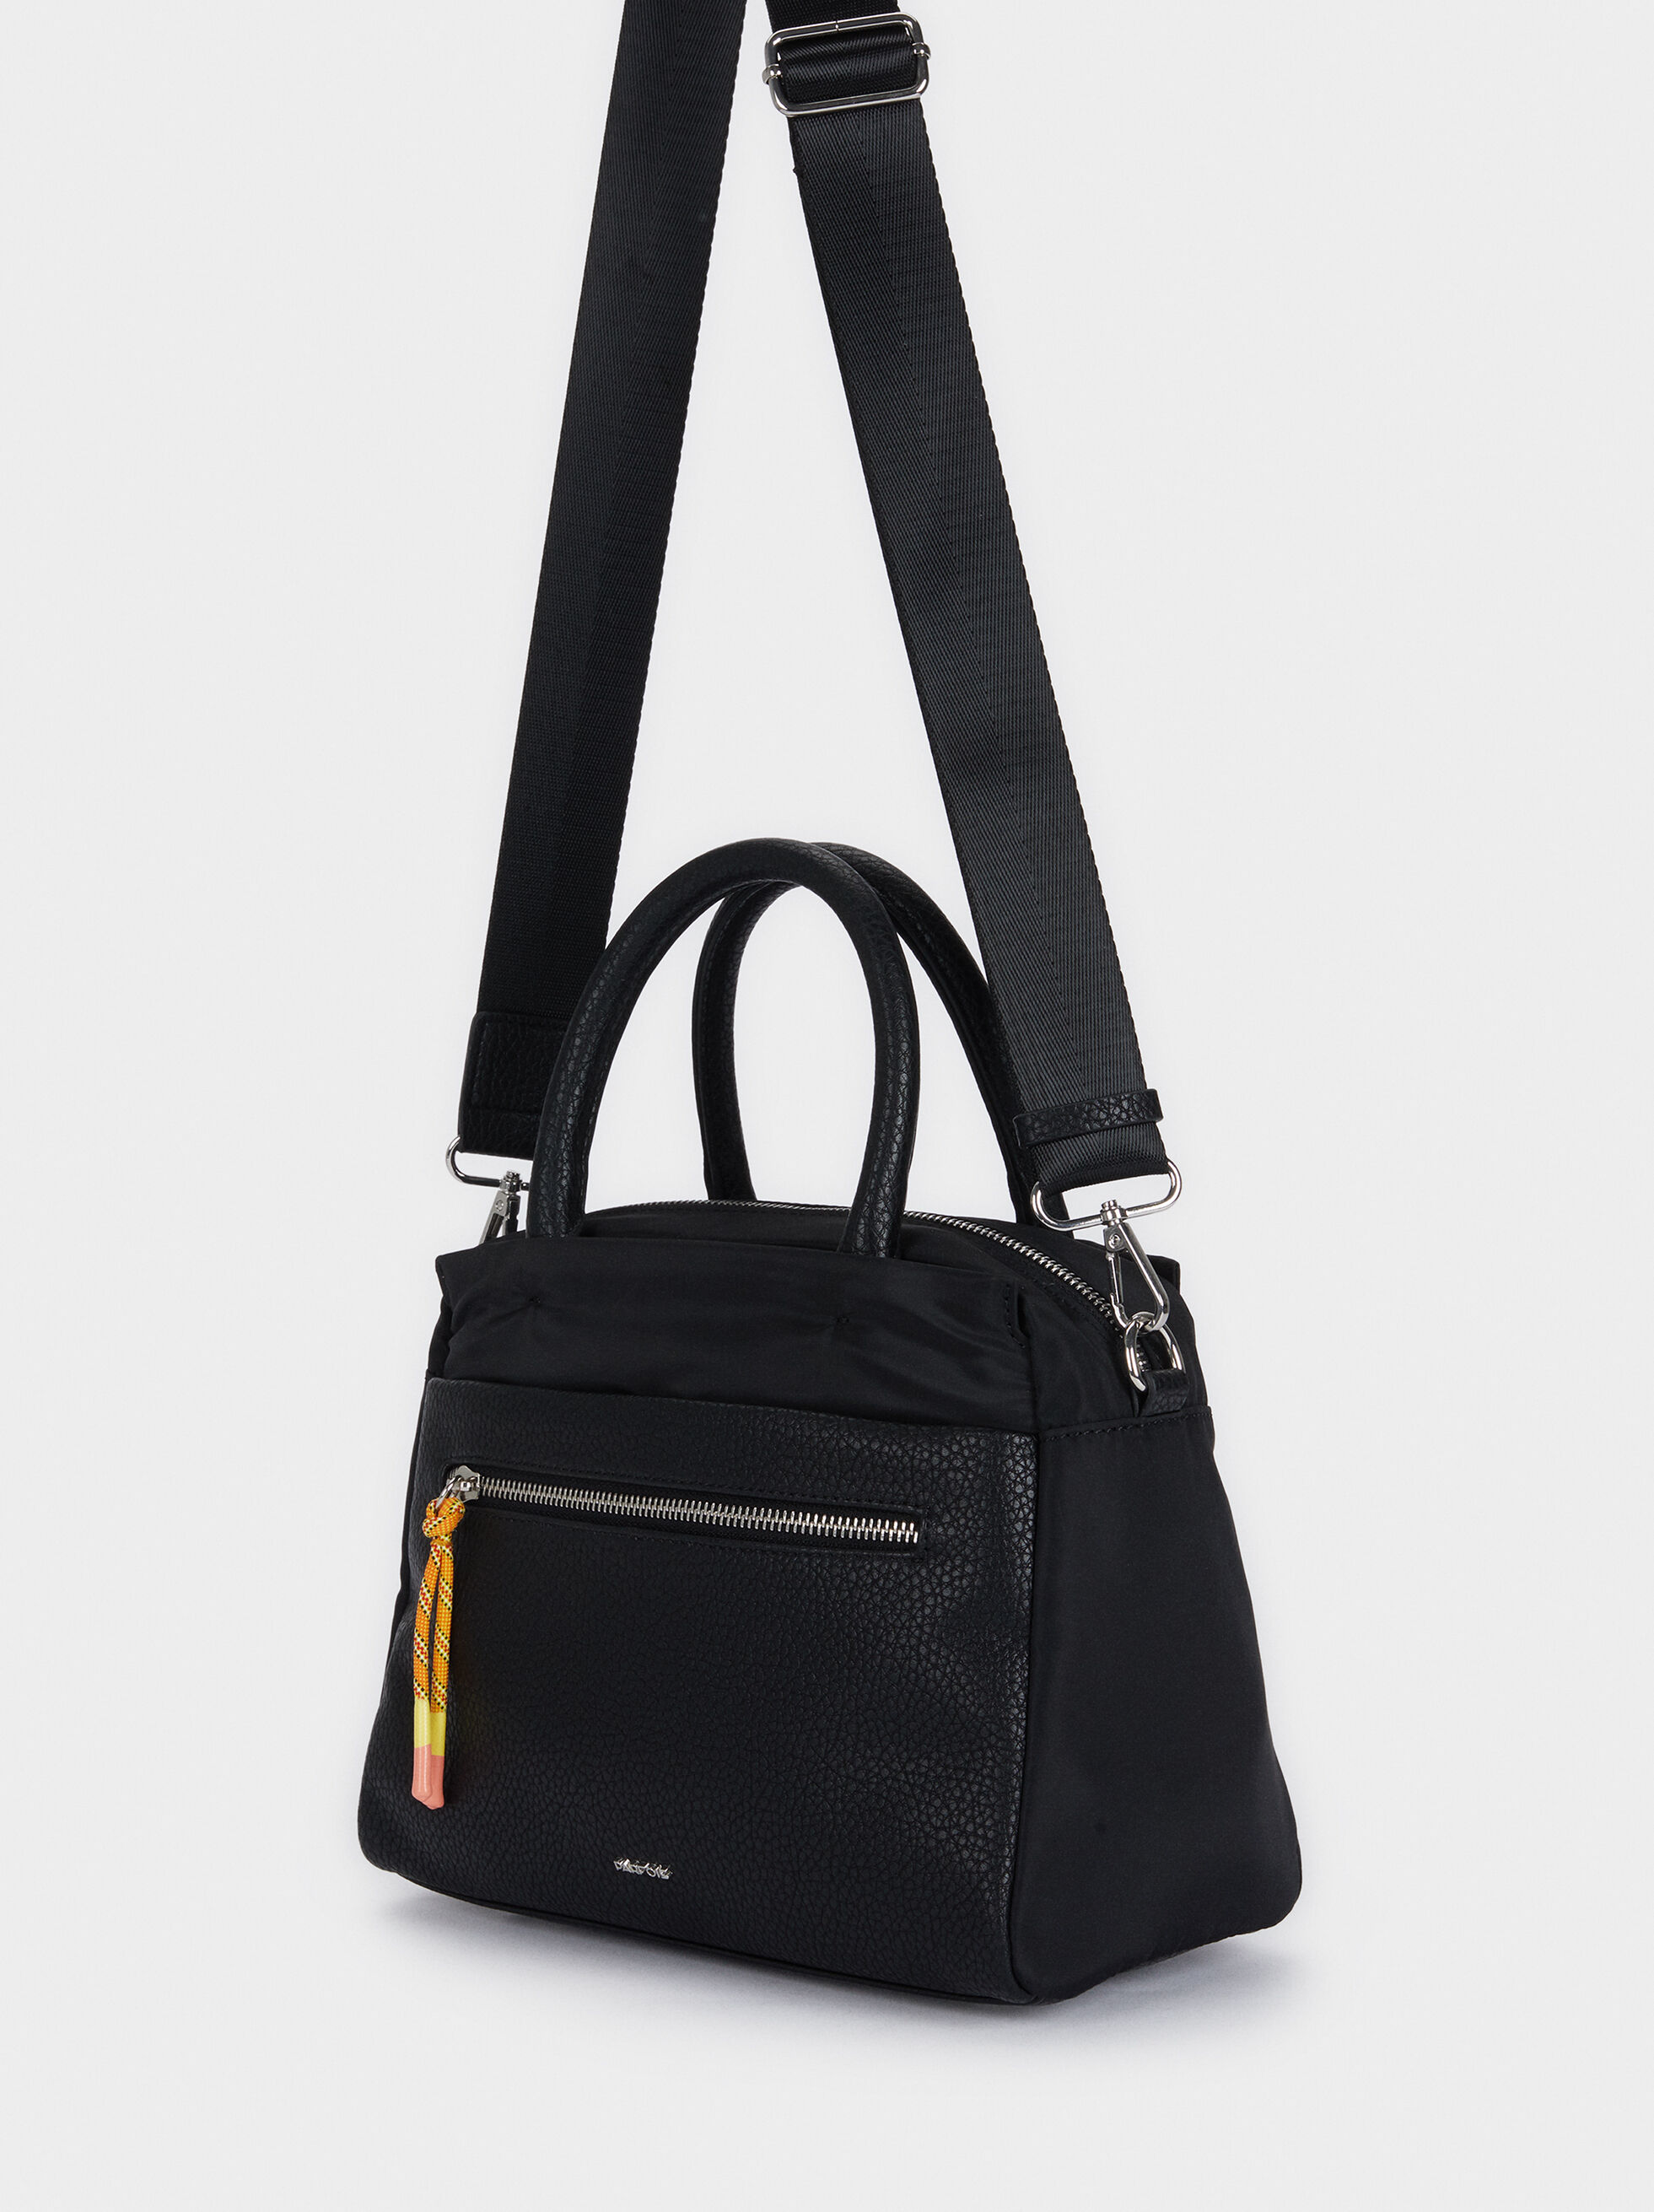 Nylon Tote Bag With Shoulder Strap, Black, hi-res